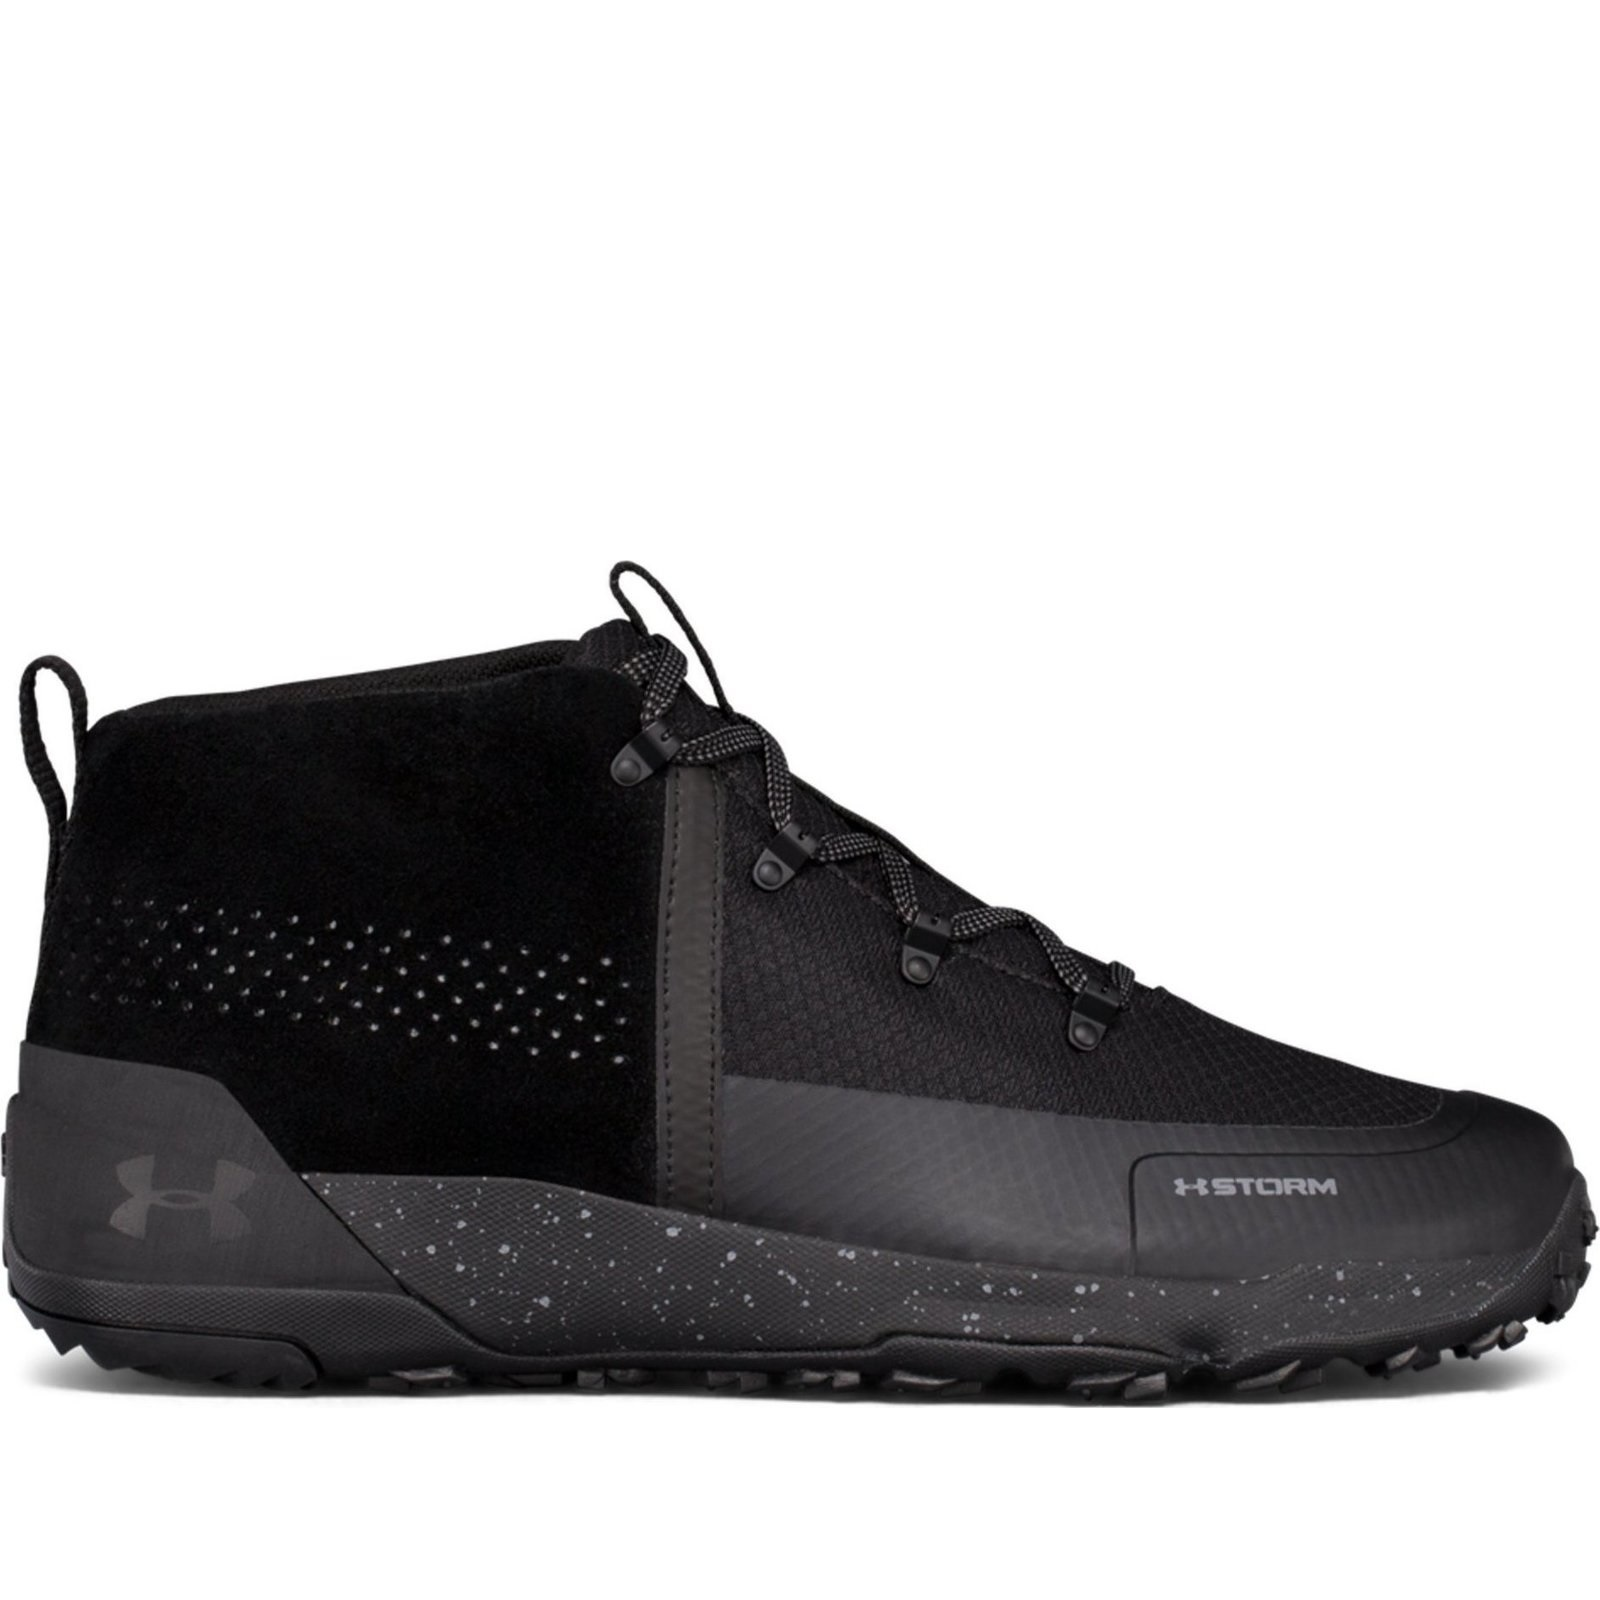 Sano Refinería Pío  Boots | Shoes | Under armour Burnt River 2.0 Mid Hiking Boots 9197 | Fitness